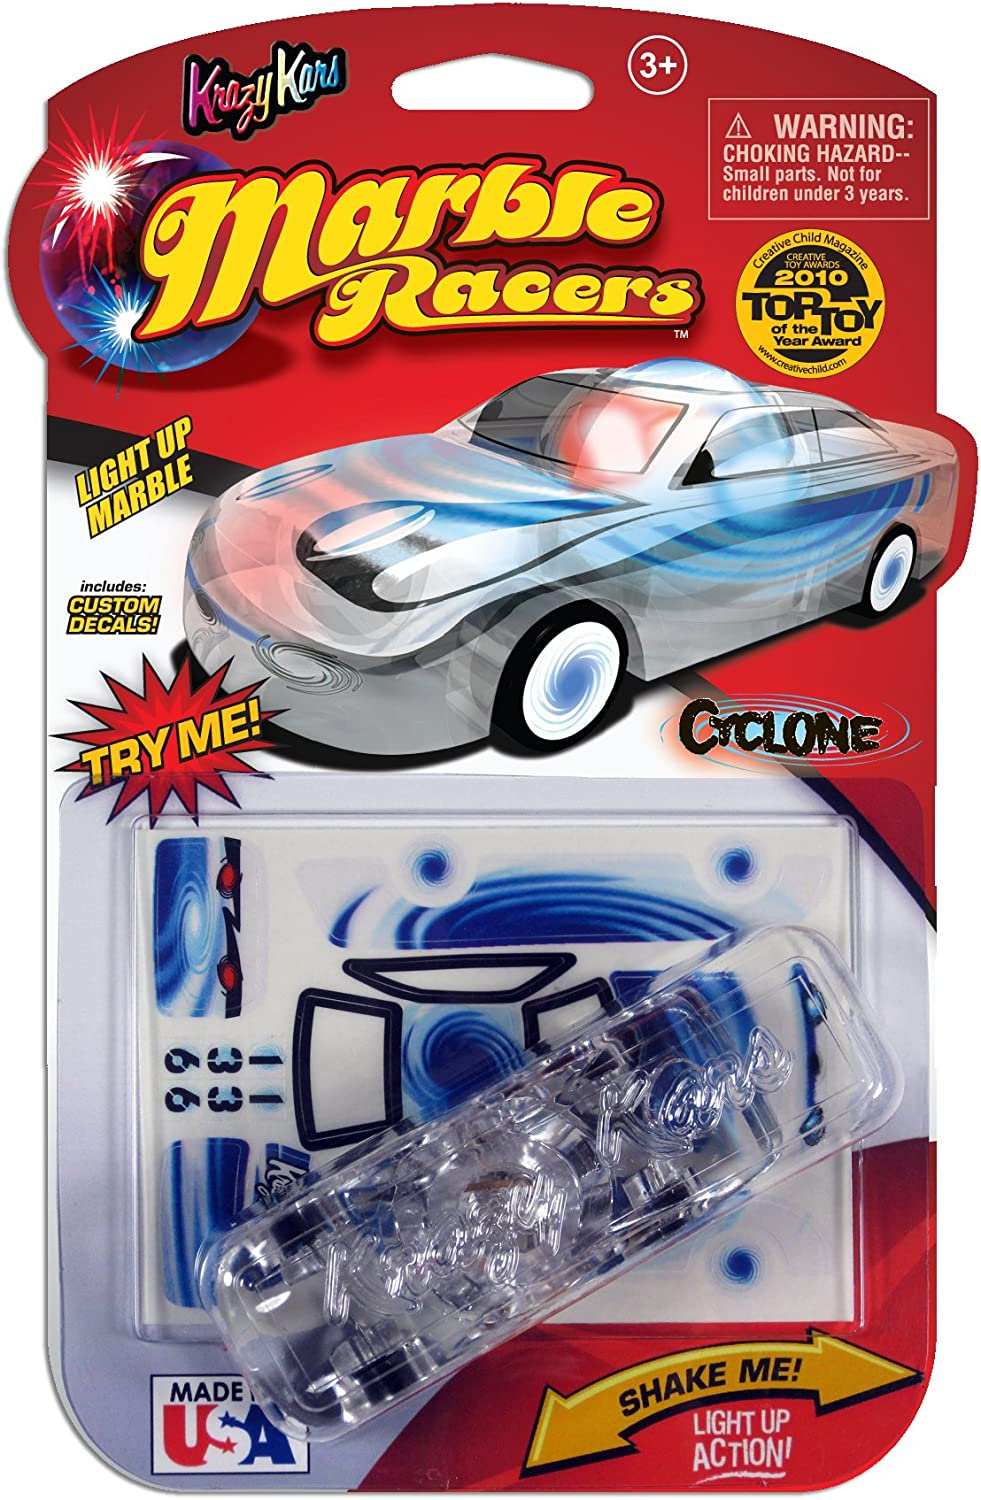 Krazy Kars Marble Racers Light up Cyclone Vehicle